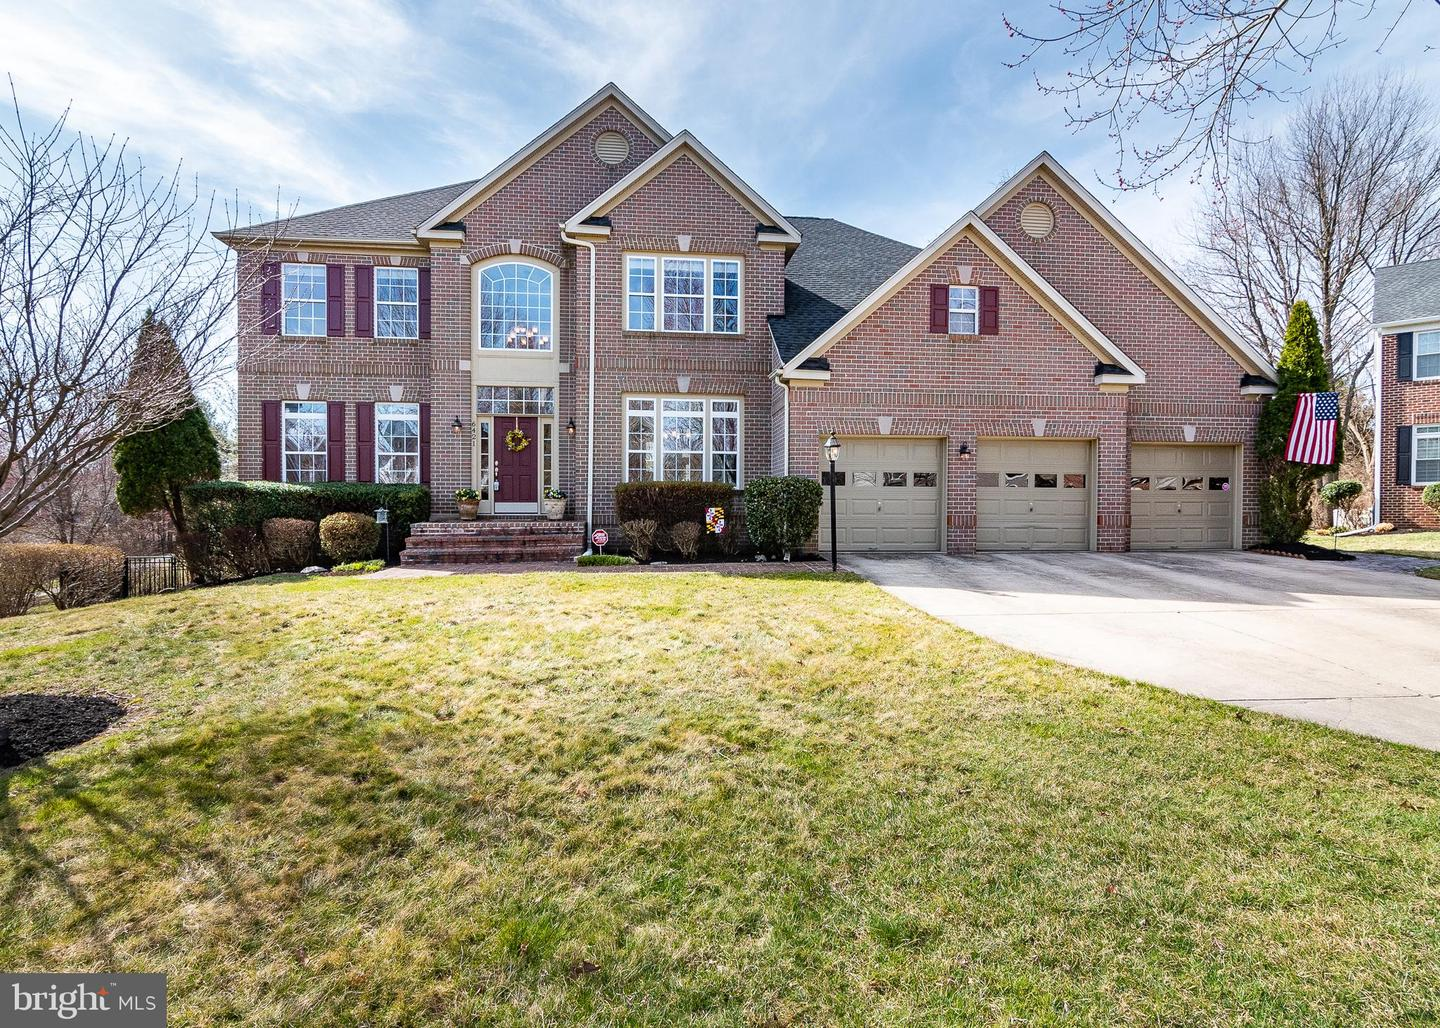 Single Family Home for Sale at 6421 Distant Melody Place 6421 Distant Melody Place Columbia, Maryland 21044 United States